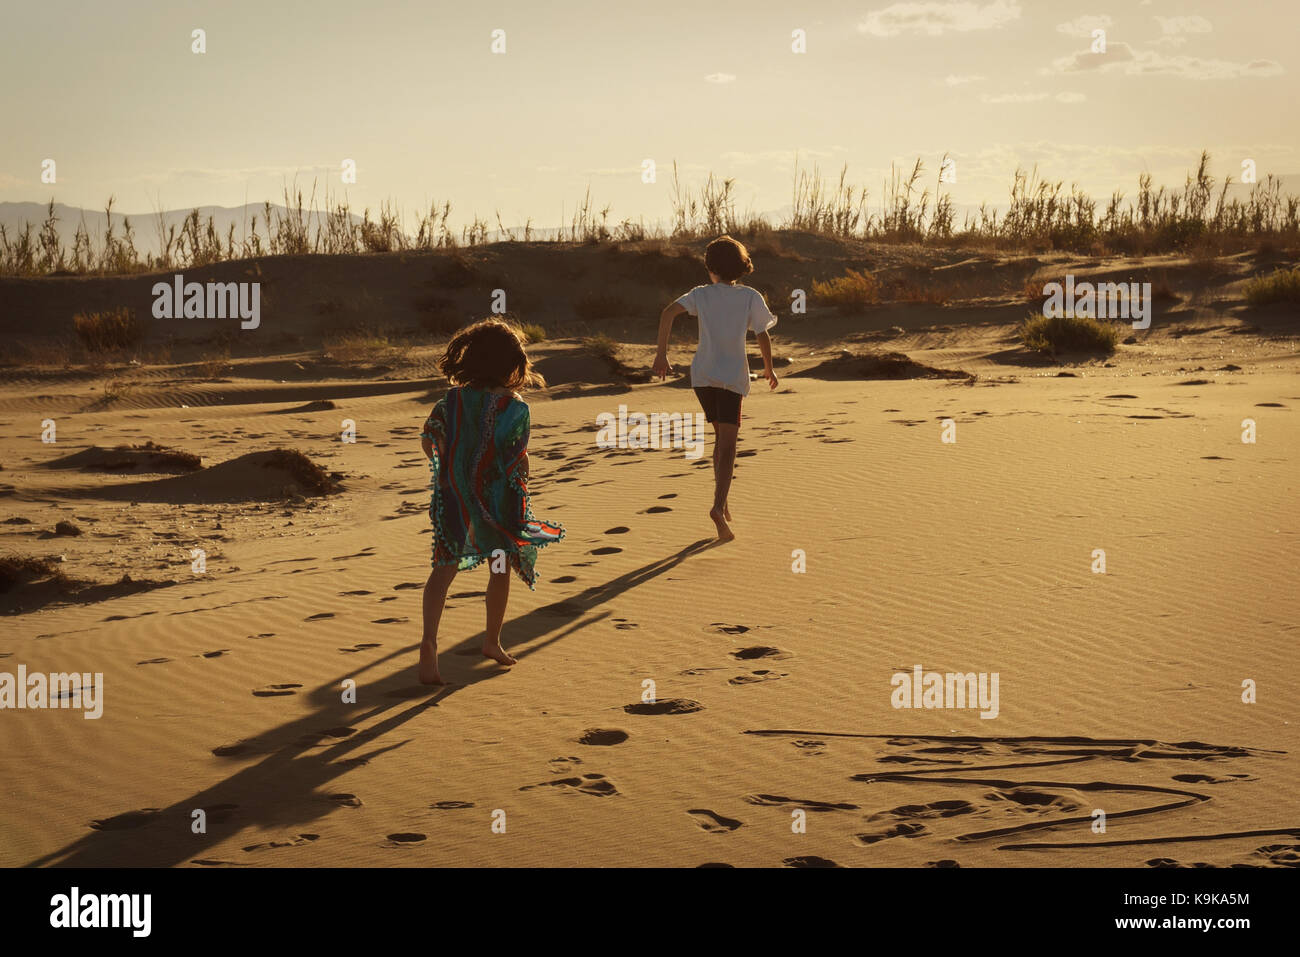 Boy and girl running wild on a sandy beach at sunset leaving footprints - Stock Image